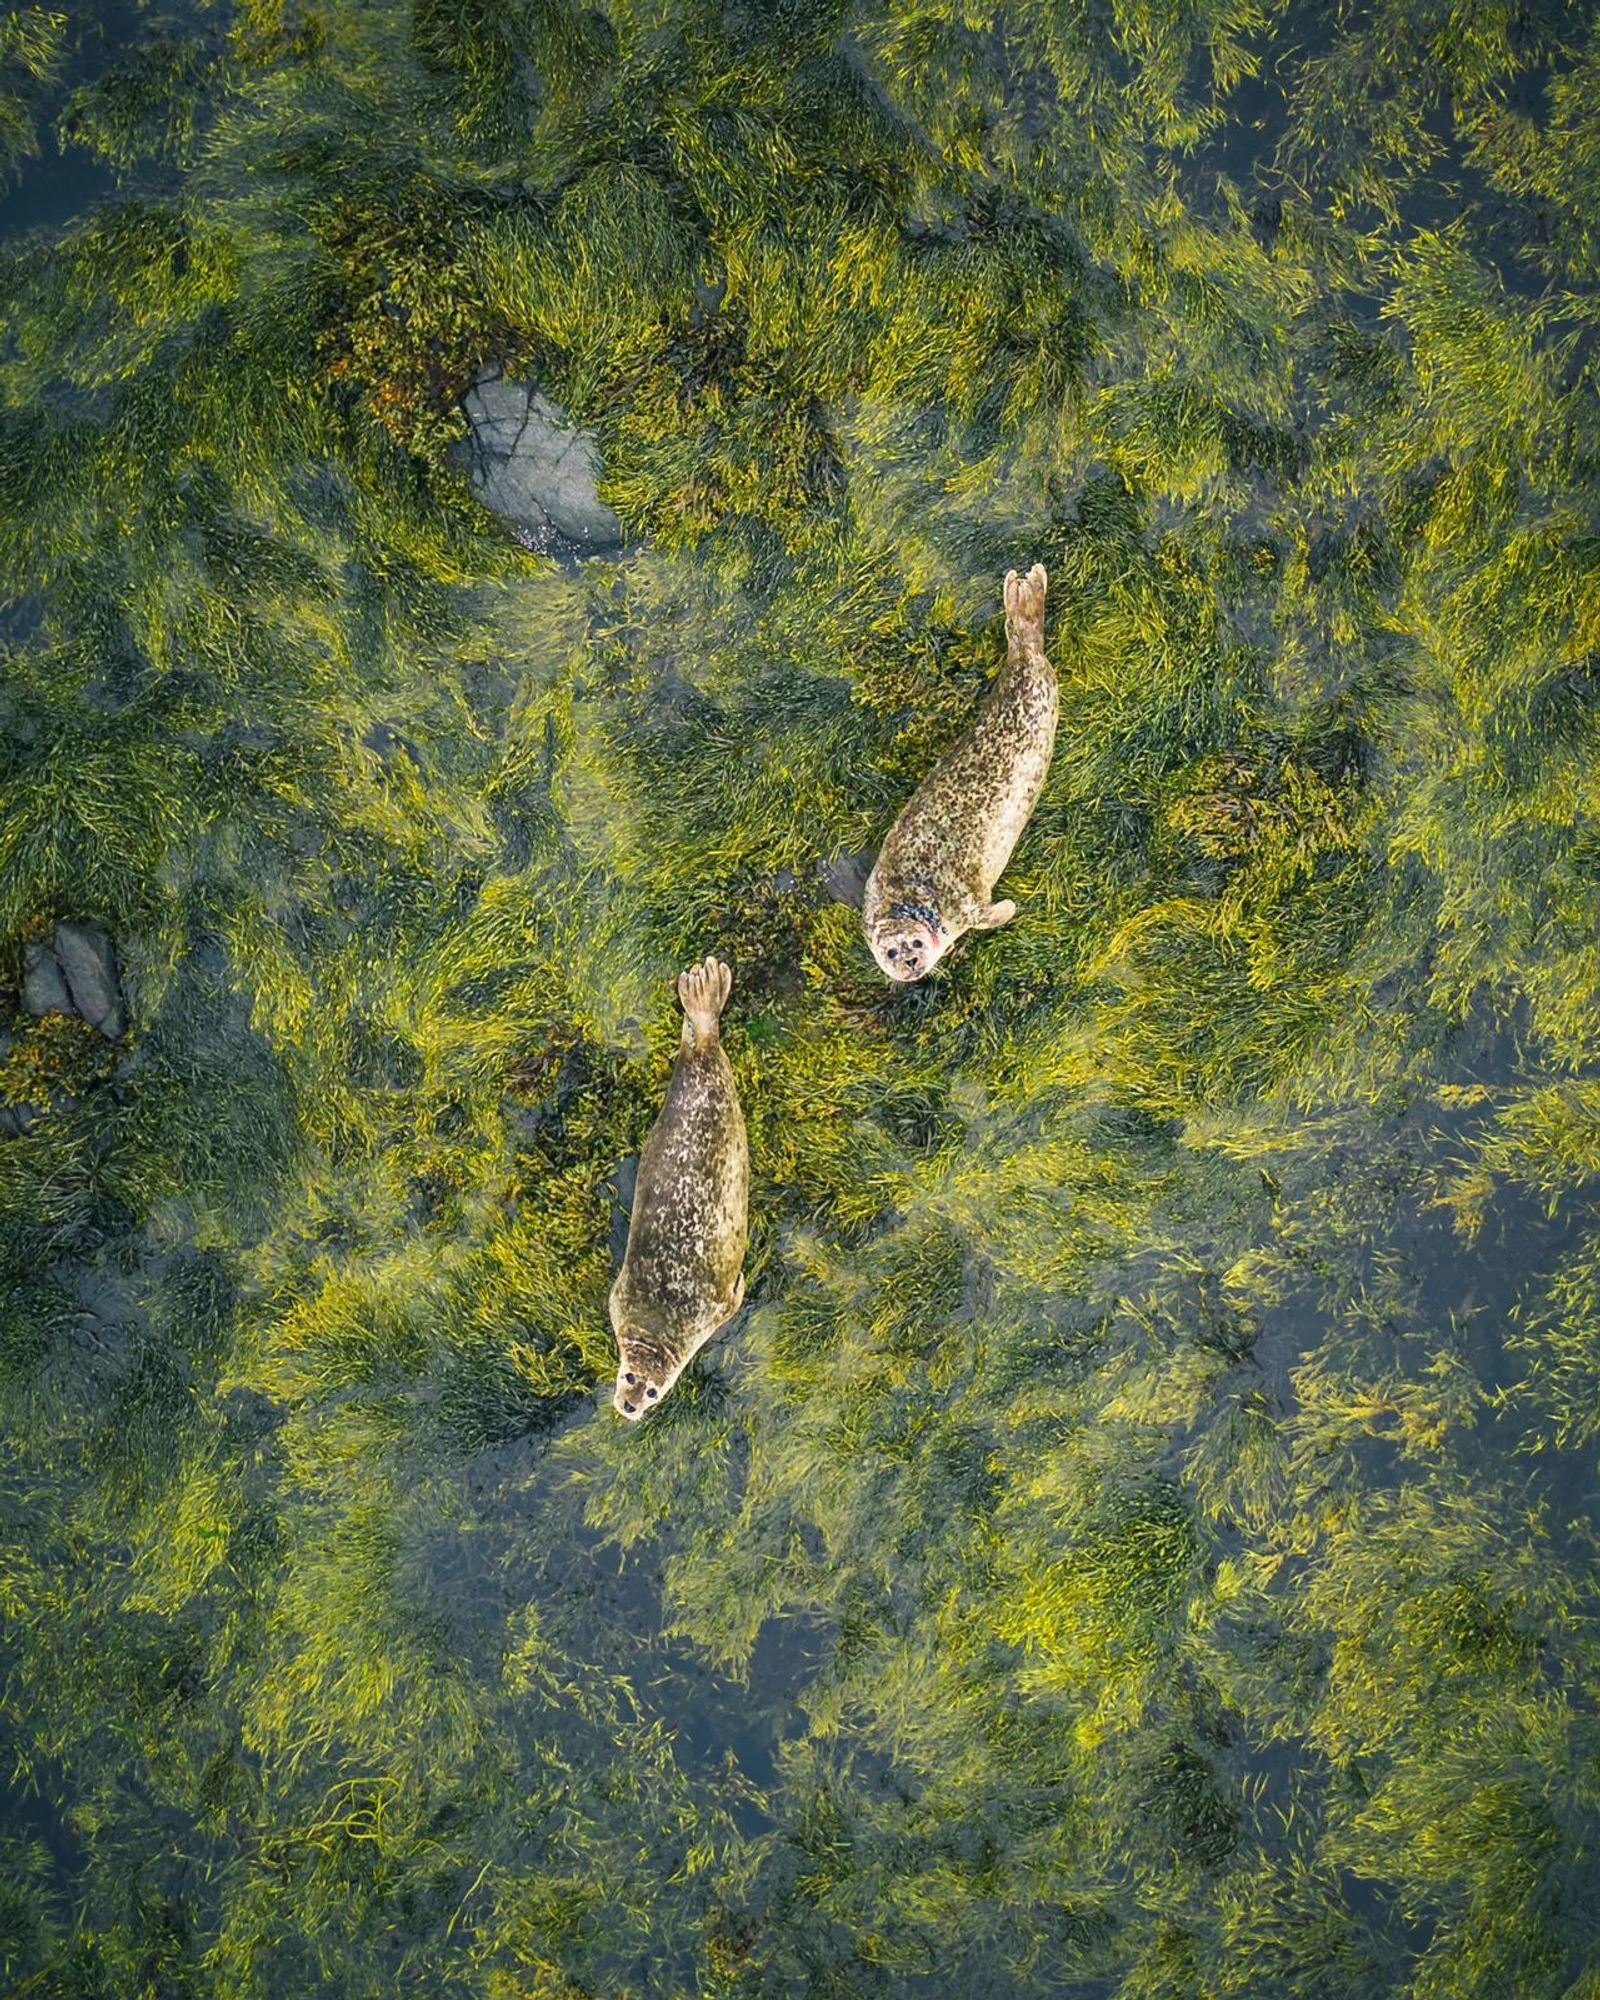 Fotó: Jon Cleave/Focus for Survival Wildlife Photography Competition